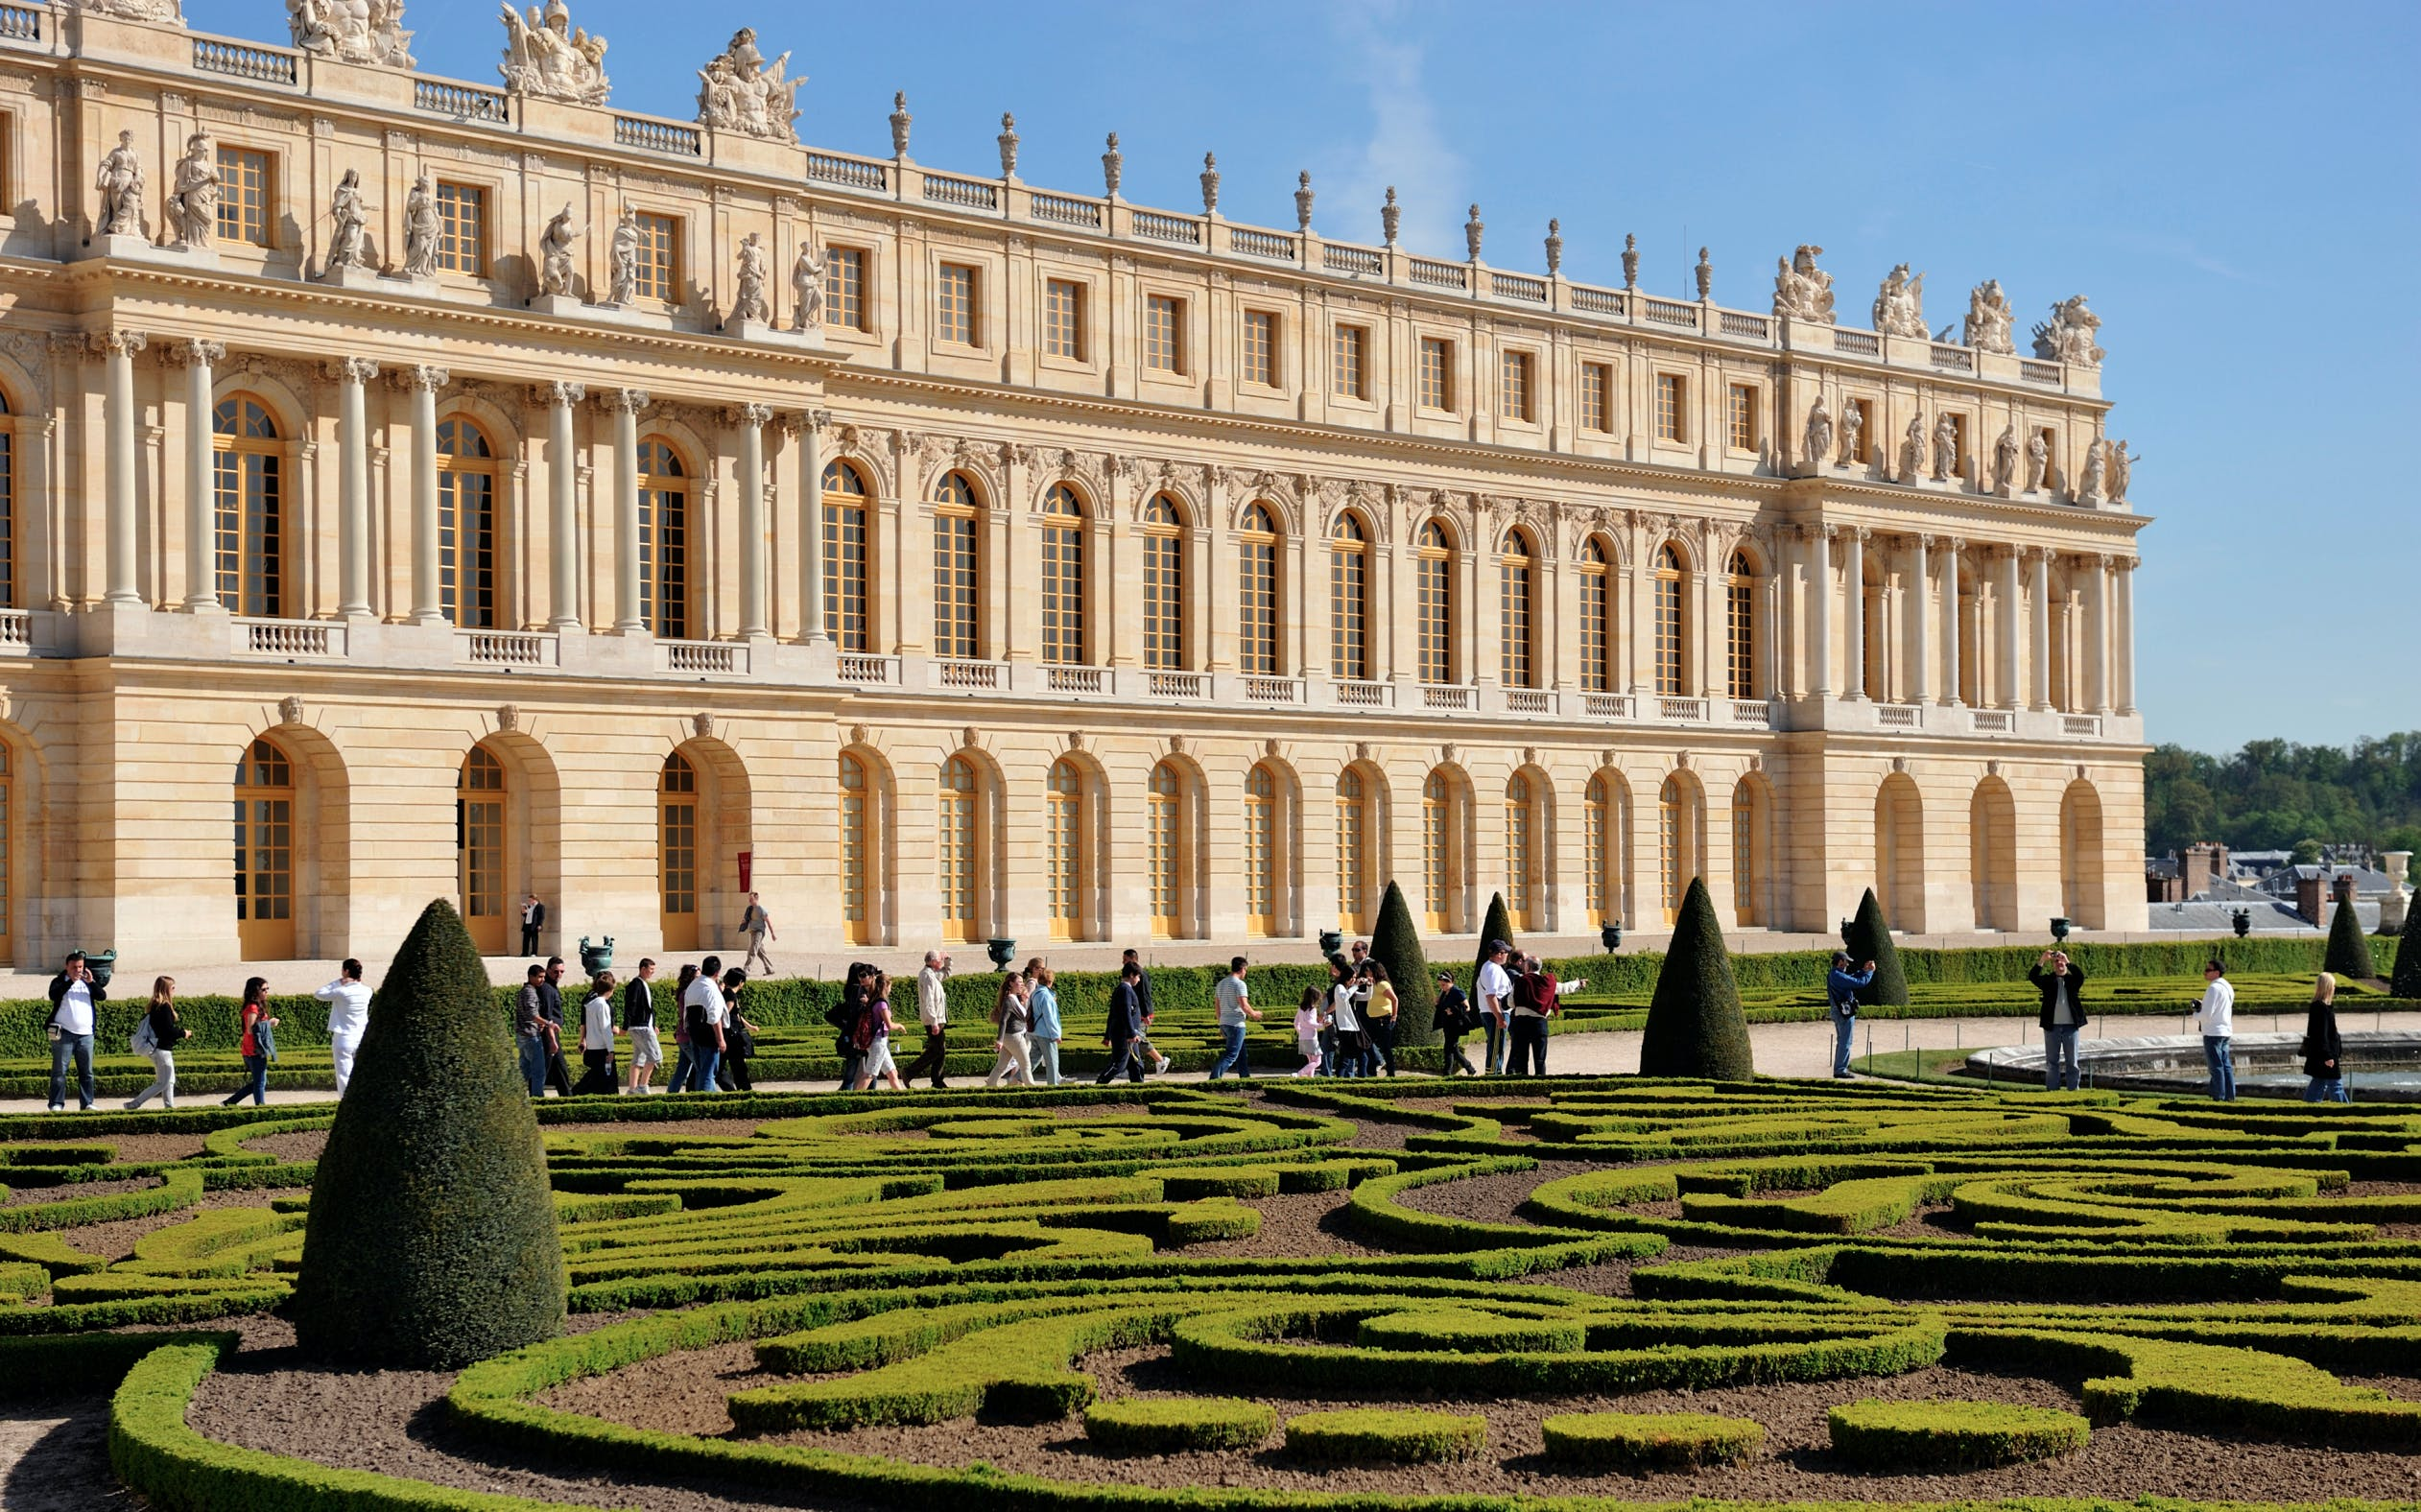 Palace of Versailles: Entry Tickets + Audioguide